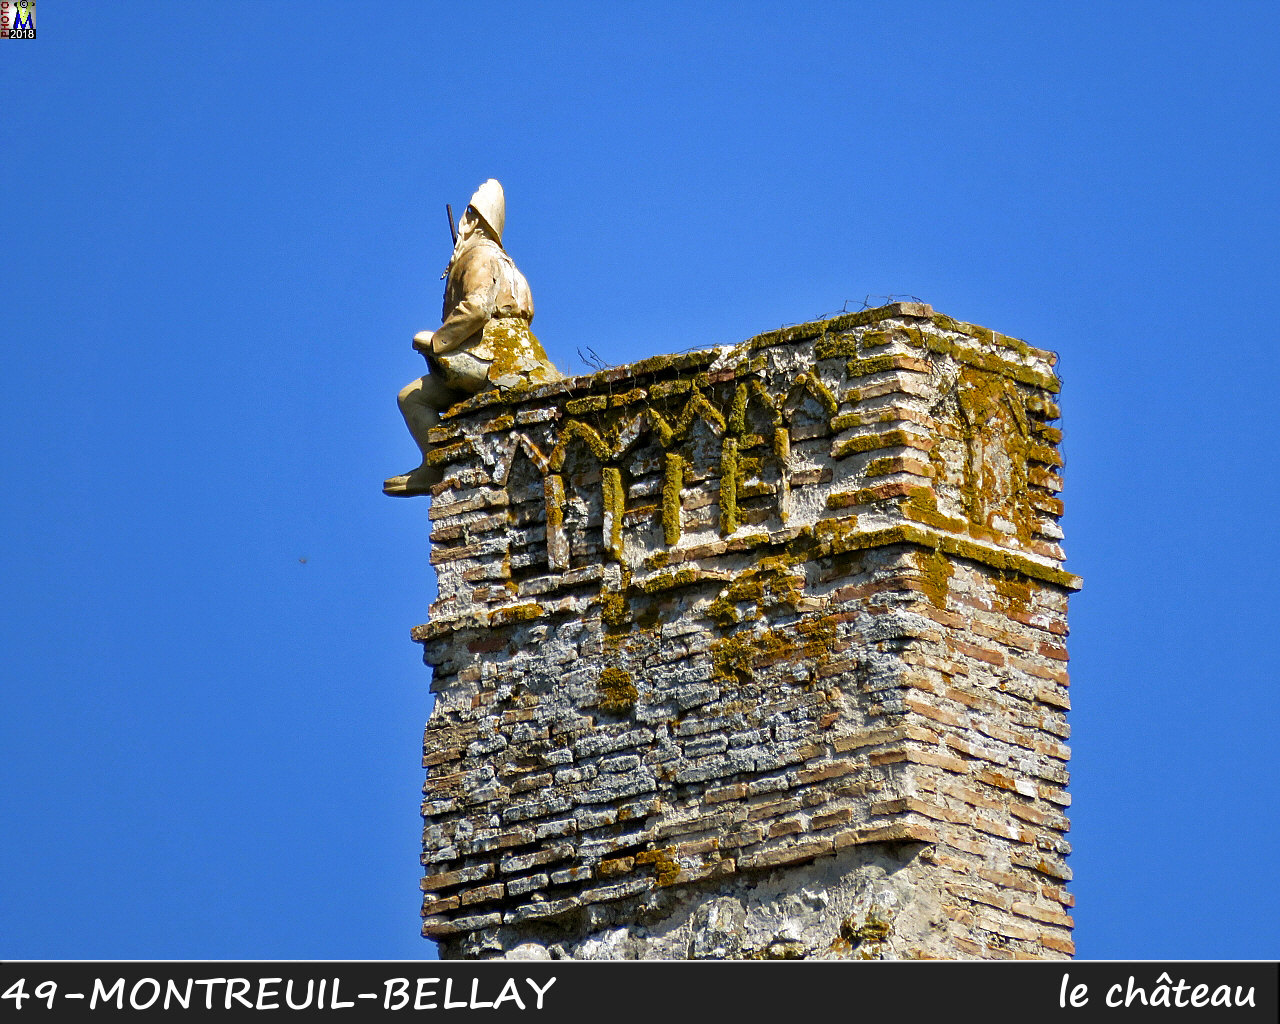 49MONTREUIL-BELLAY_chateau_1038.jpg